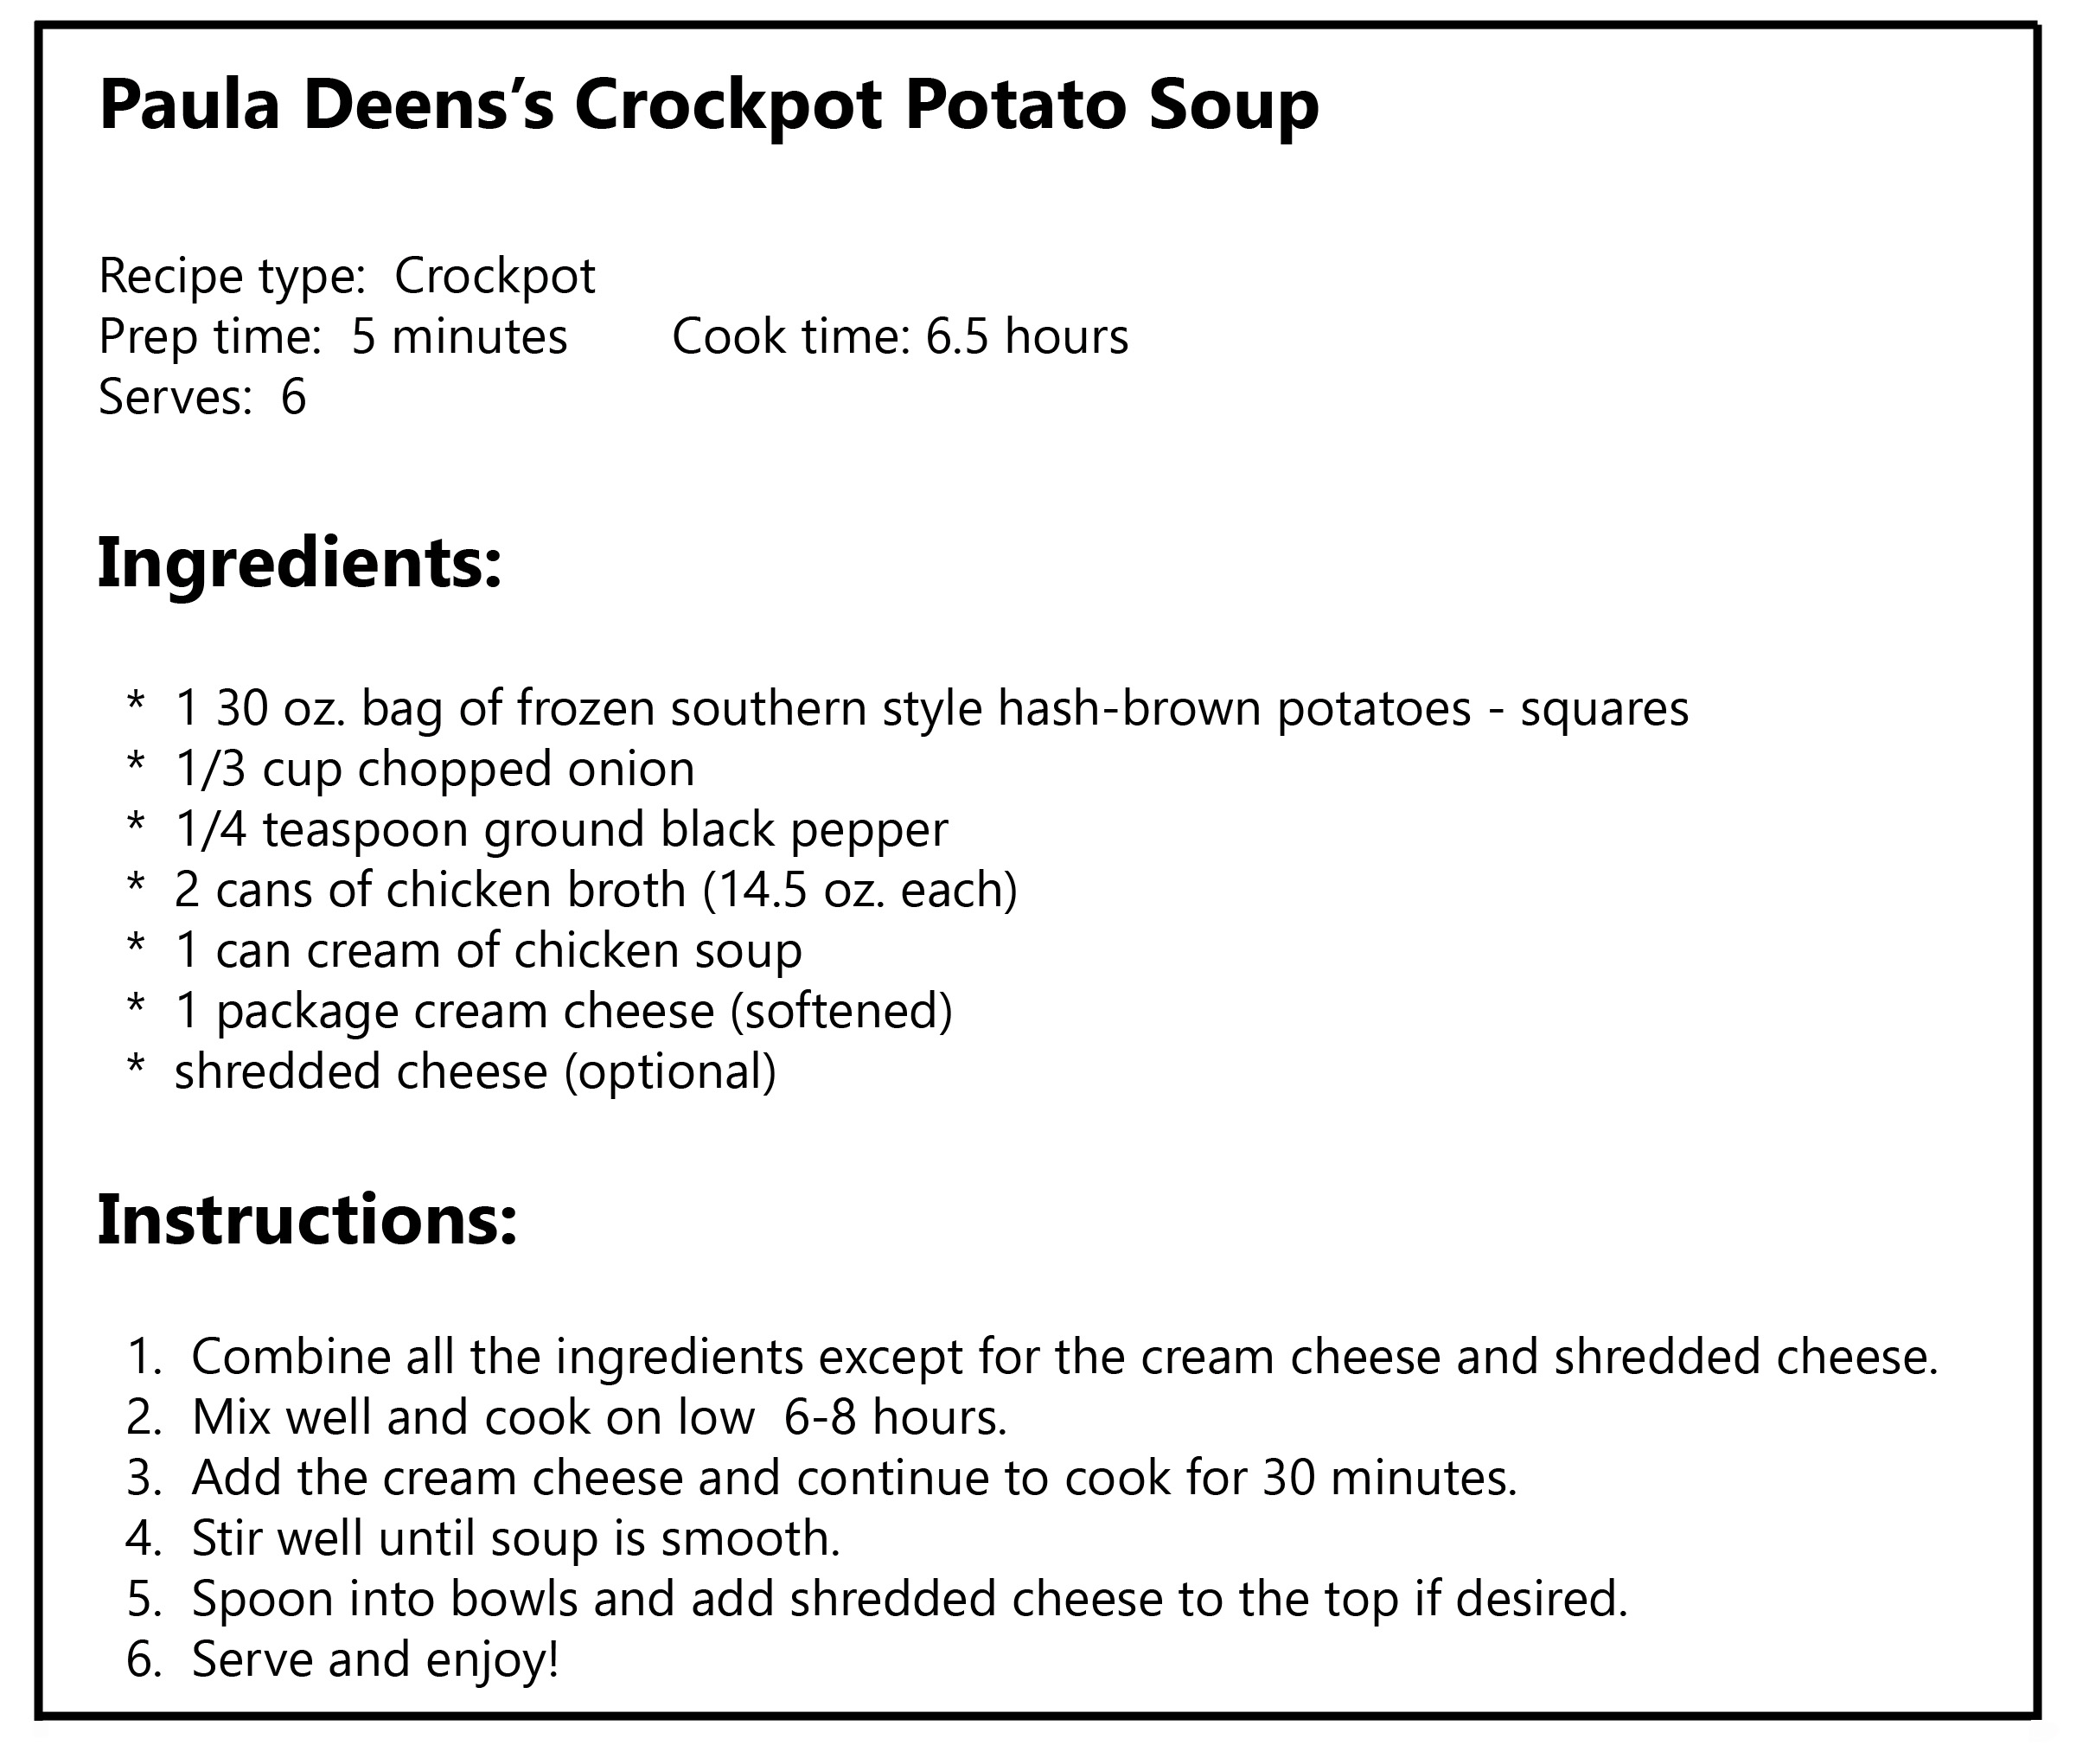 Crock Pot Potato Soup Food Network